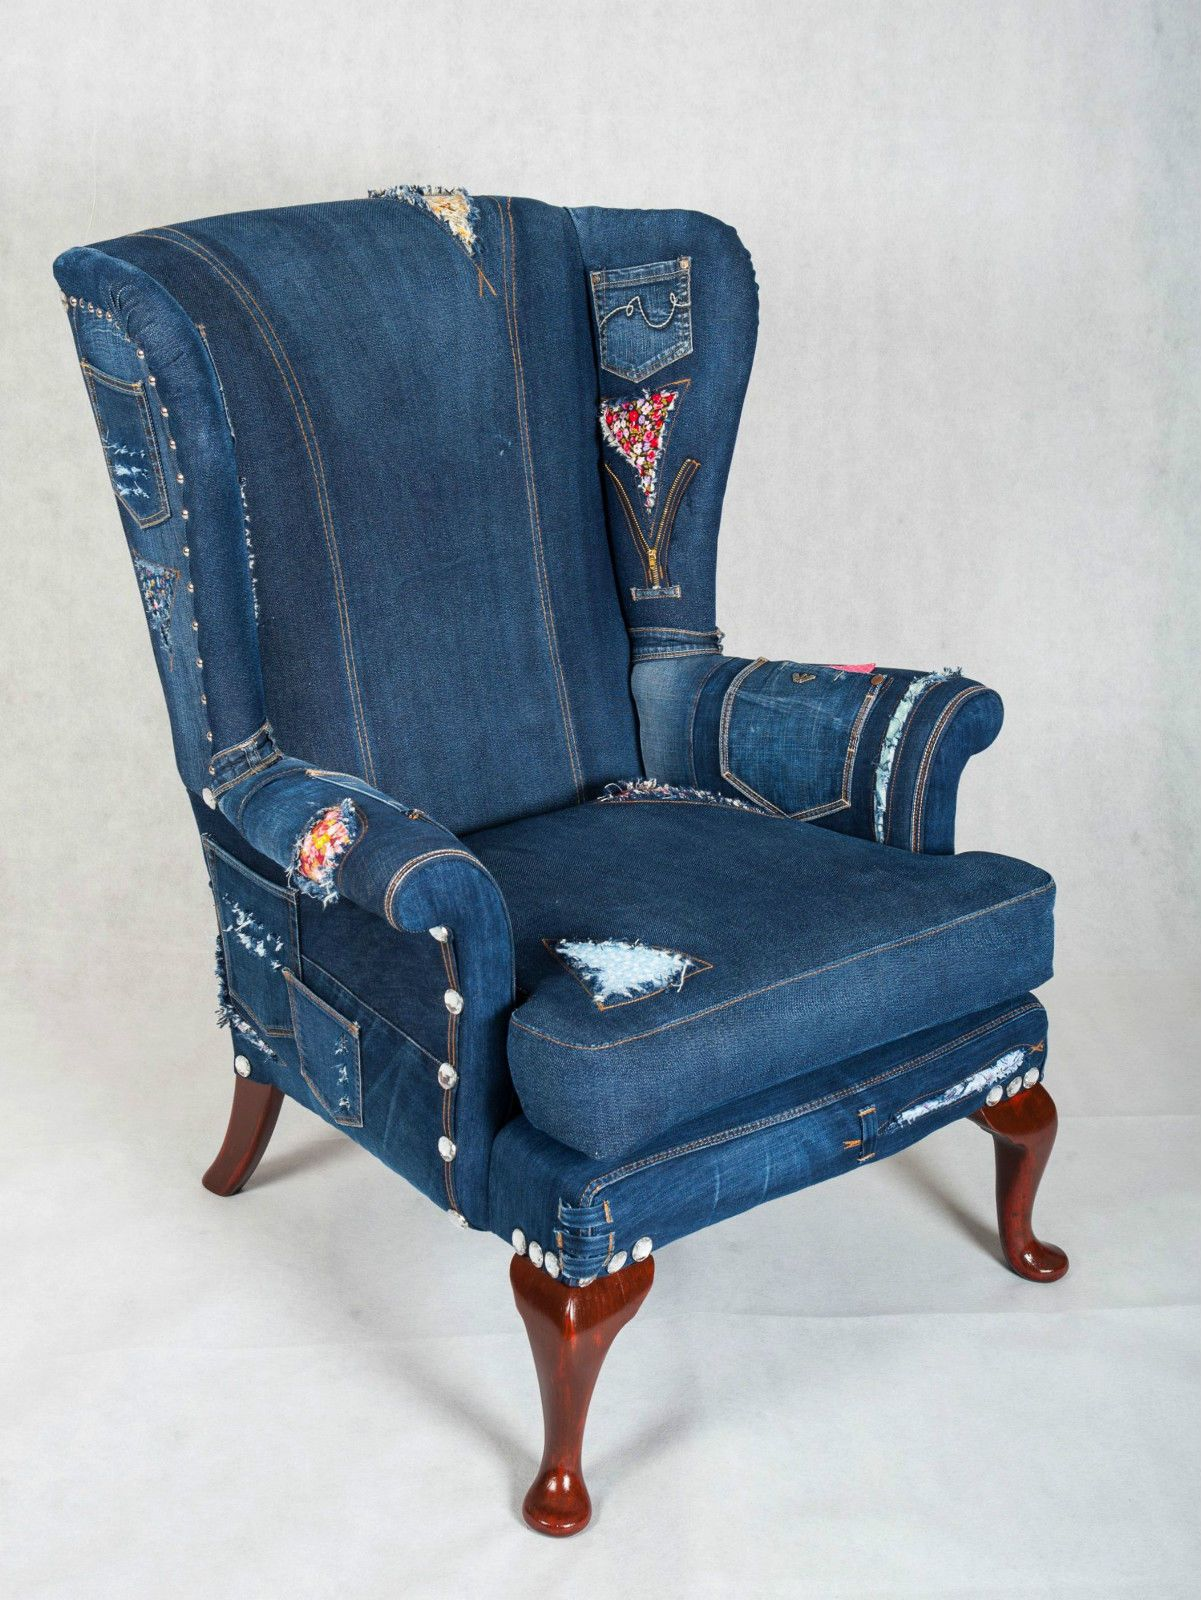 Denim Jeans Wingback Armchair Parker Knoll sofa chair ...